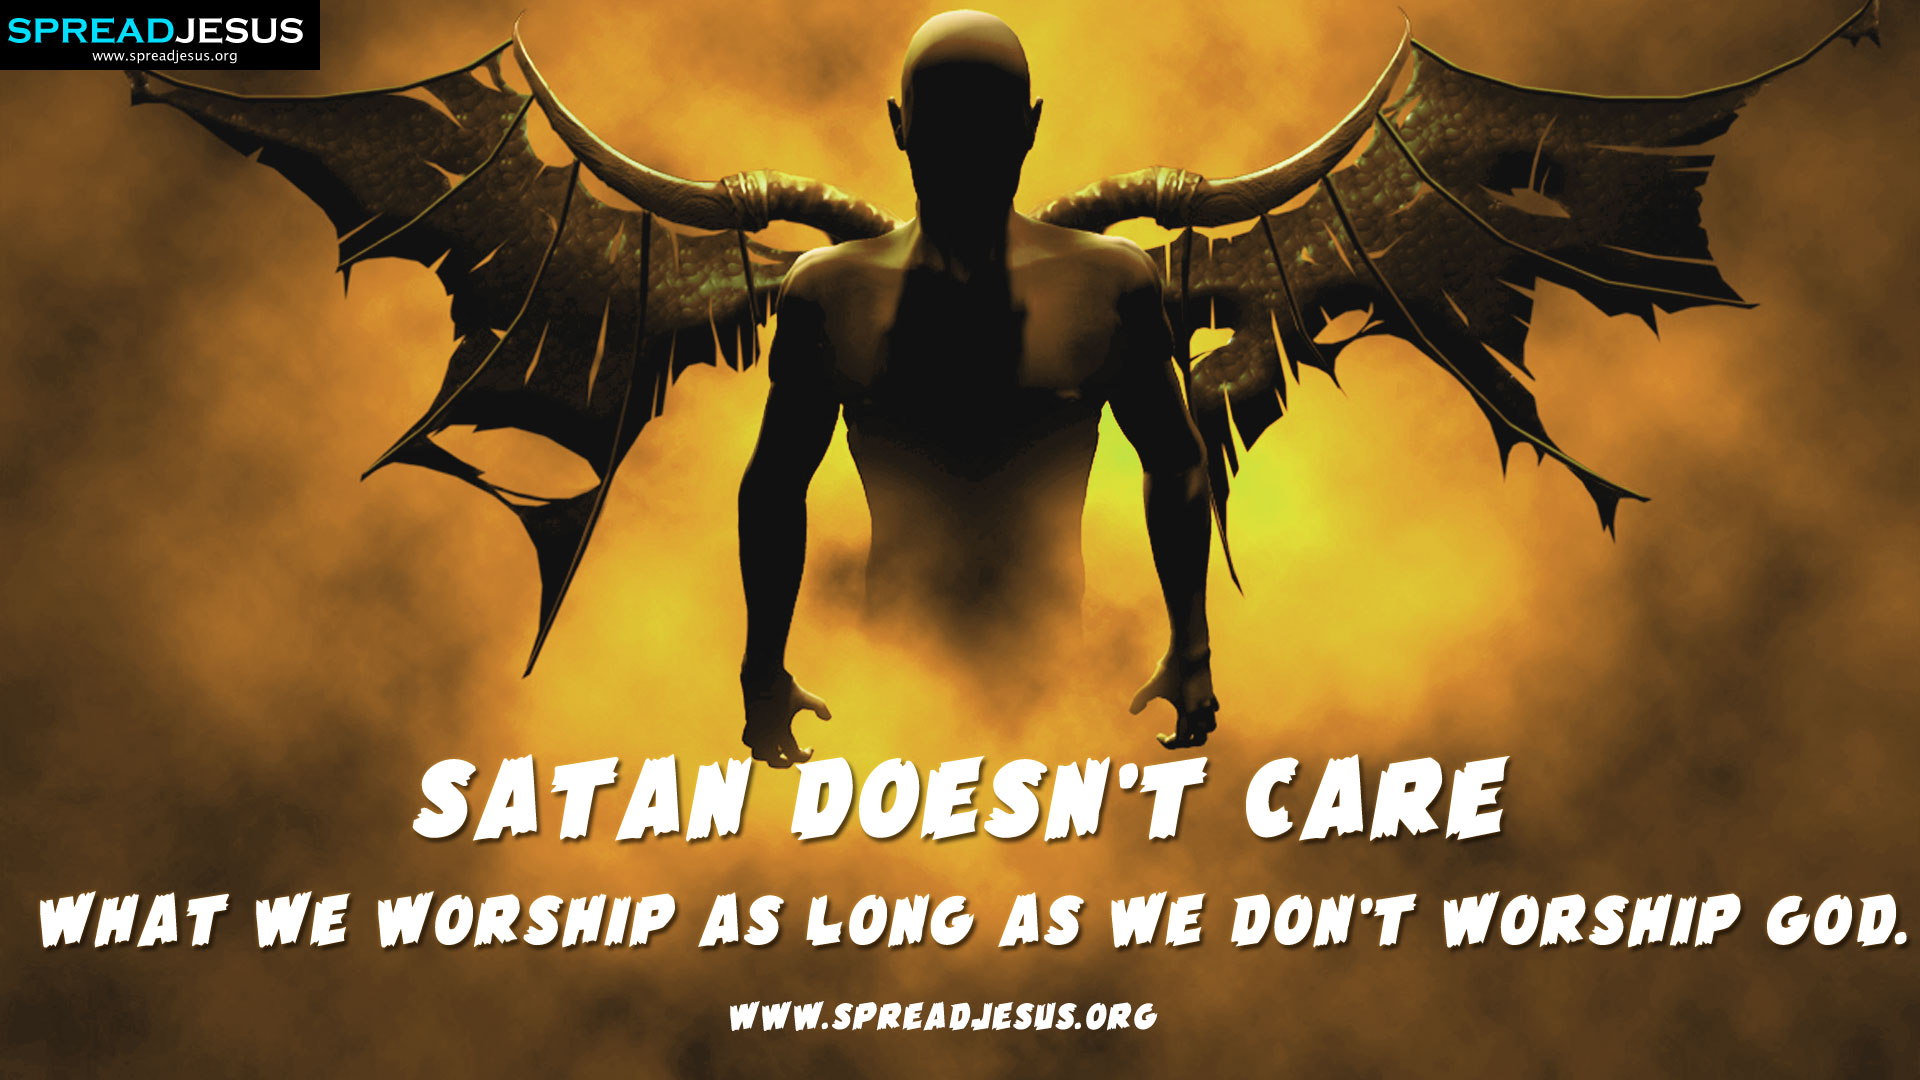 Christian Quotes HD Wallpaper Satan doesnt care what we worship as 1920x1080